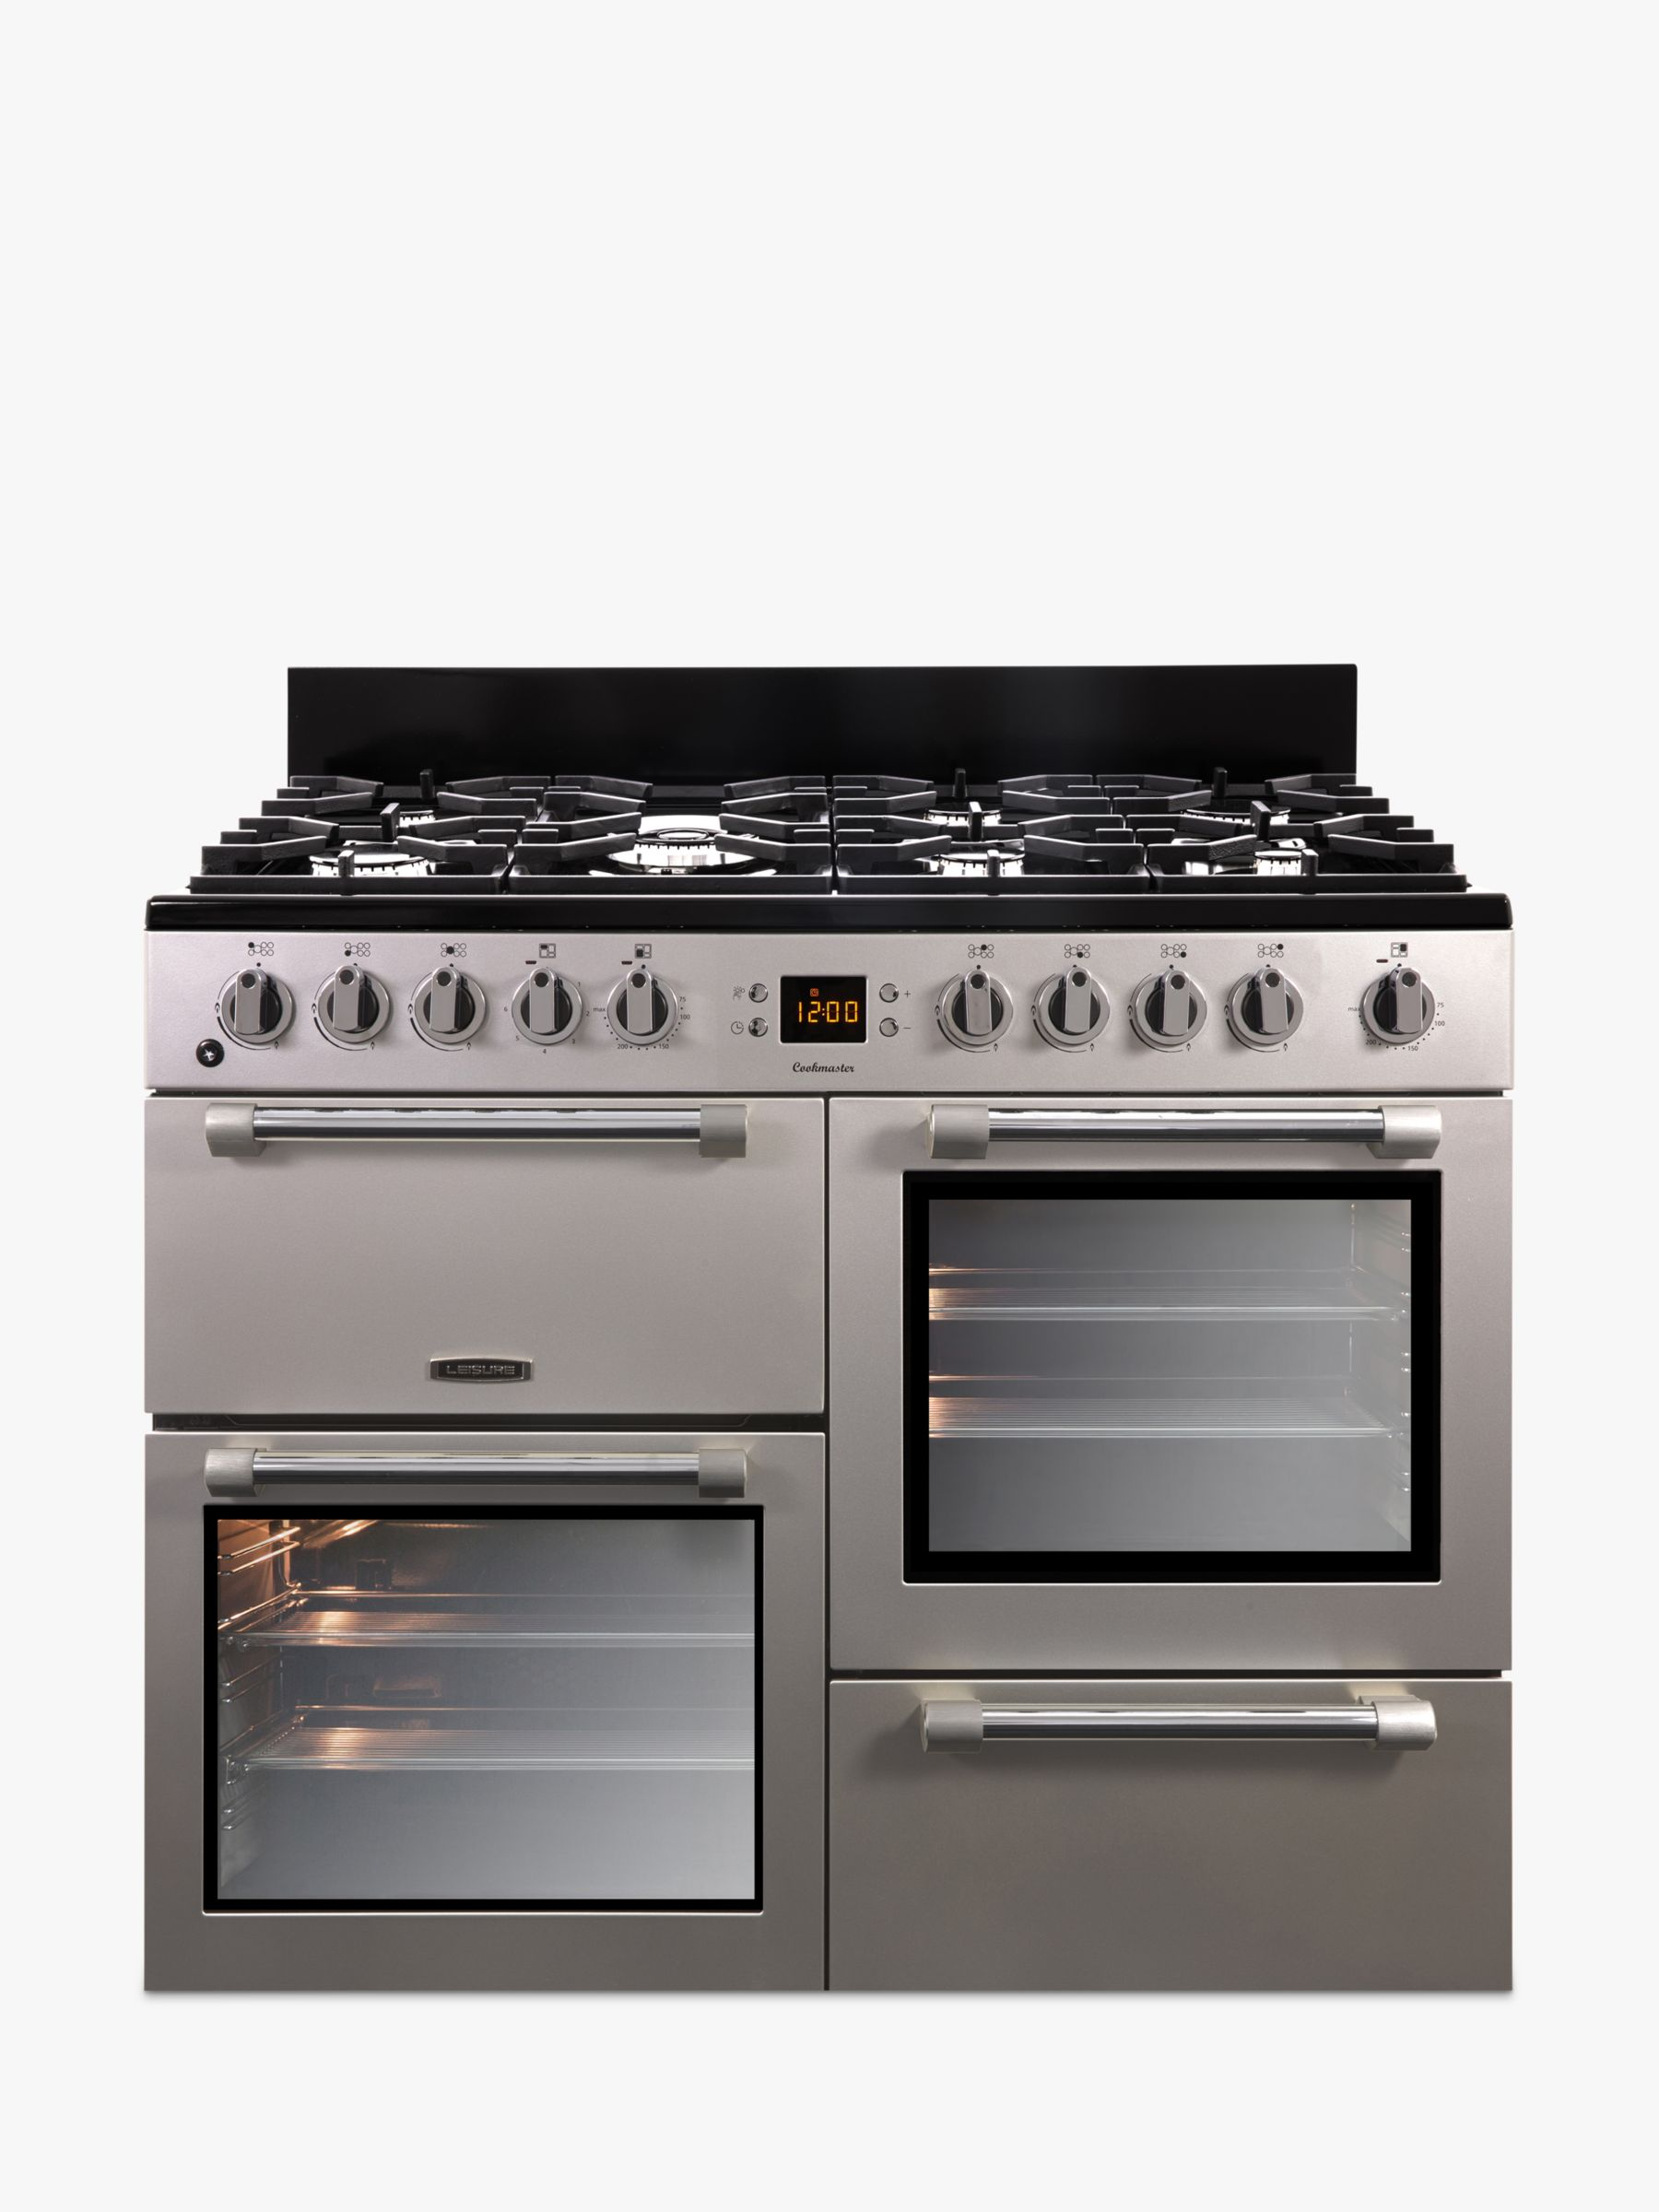 Leisure Leisure CK100F232 Cookmaster Dual Fuel Range Cooker